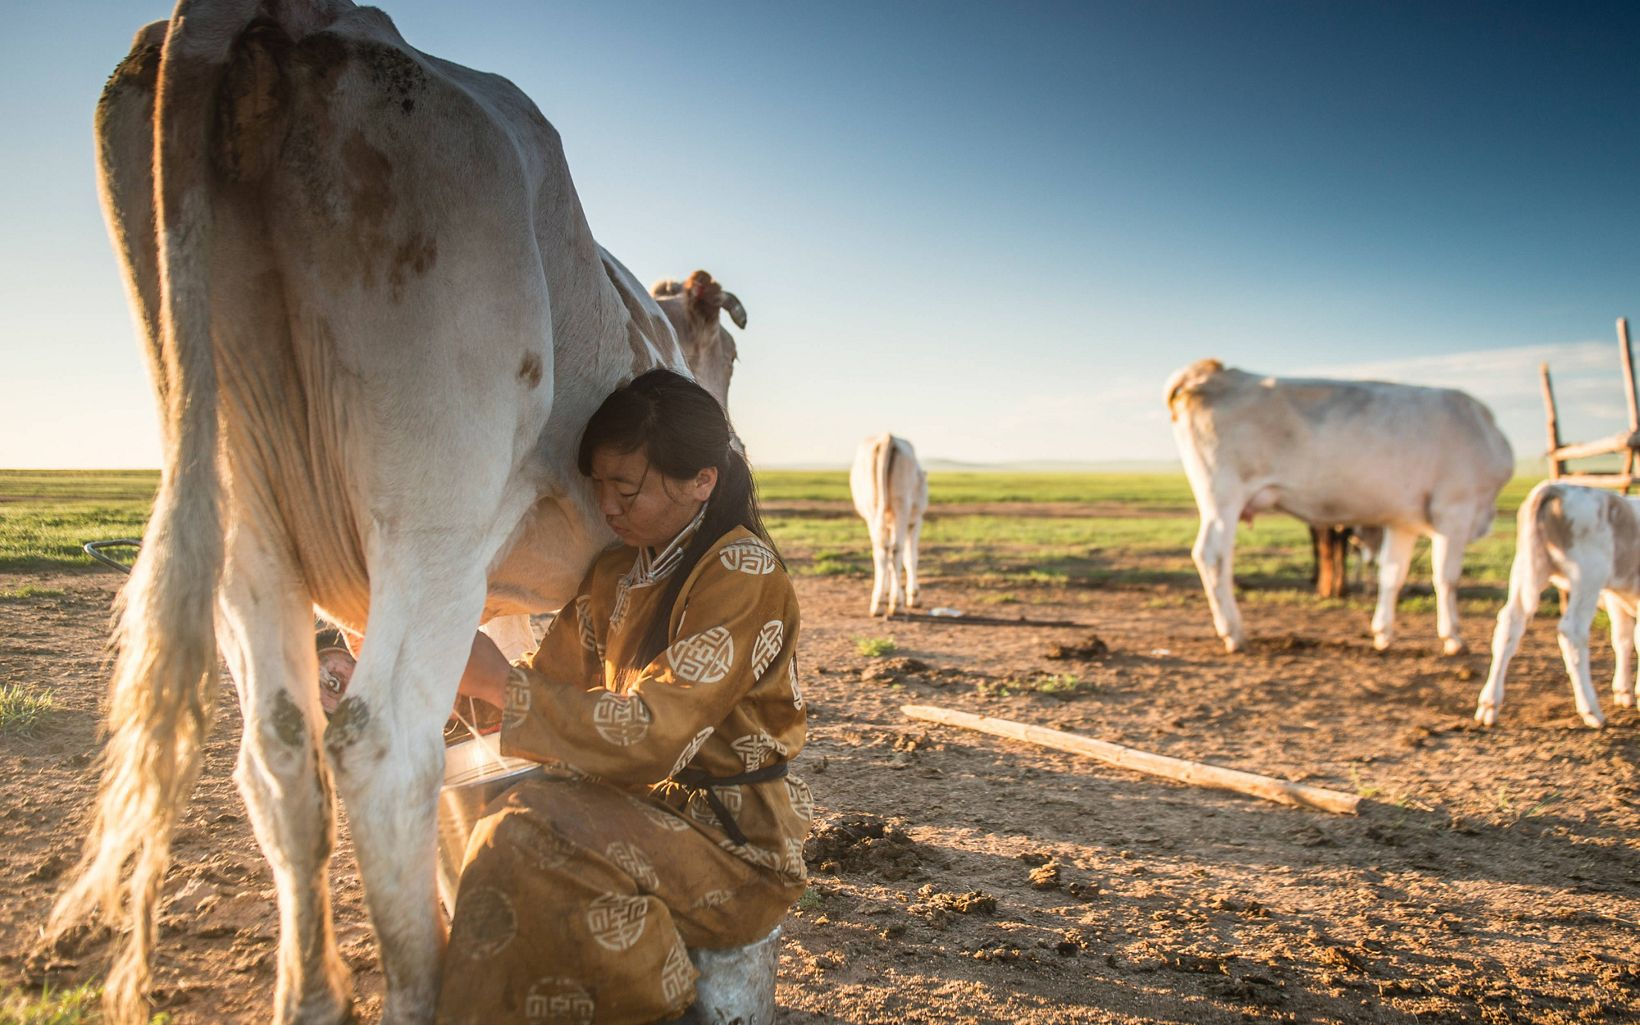 A woman milks a cow in the foreground with a large plain in the background.